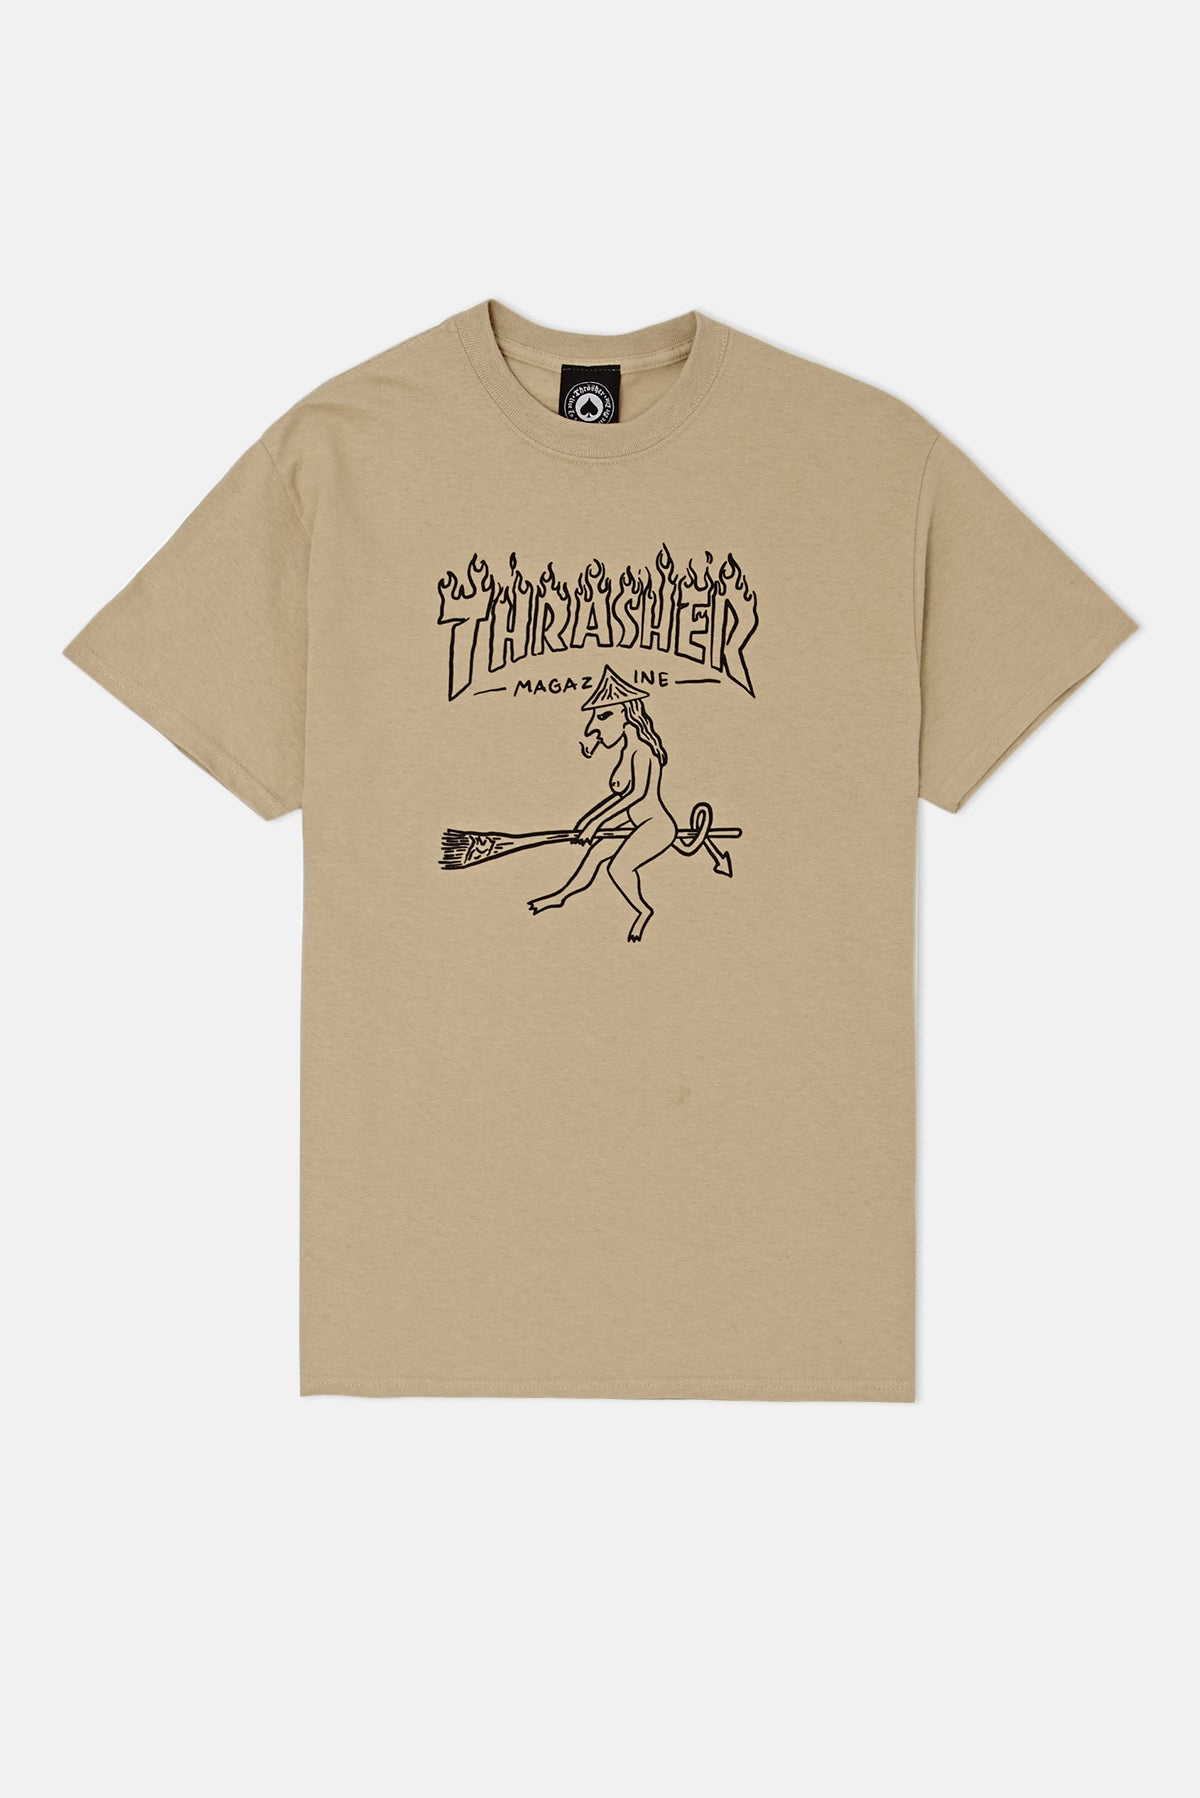 Thrasher tričko WITCH S/S- TAN